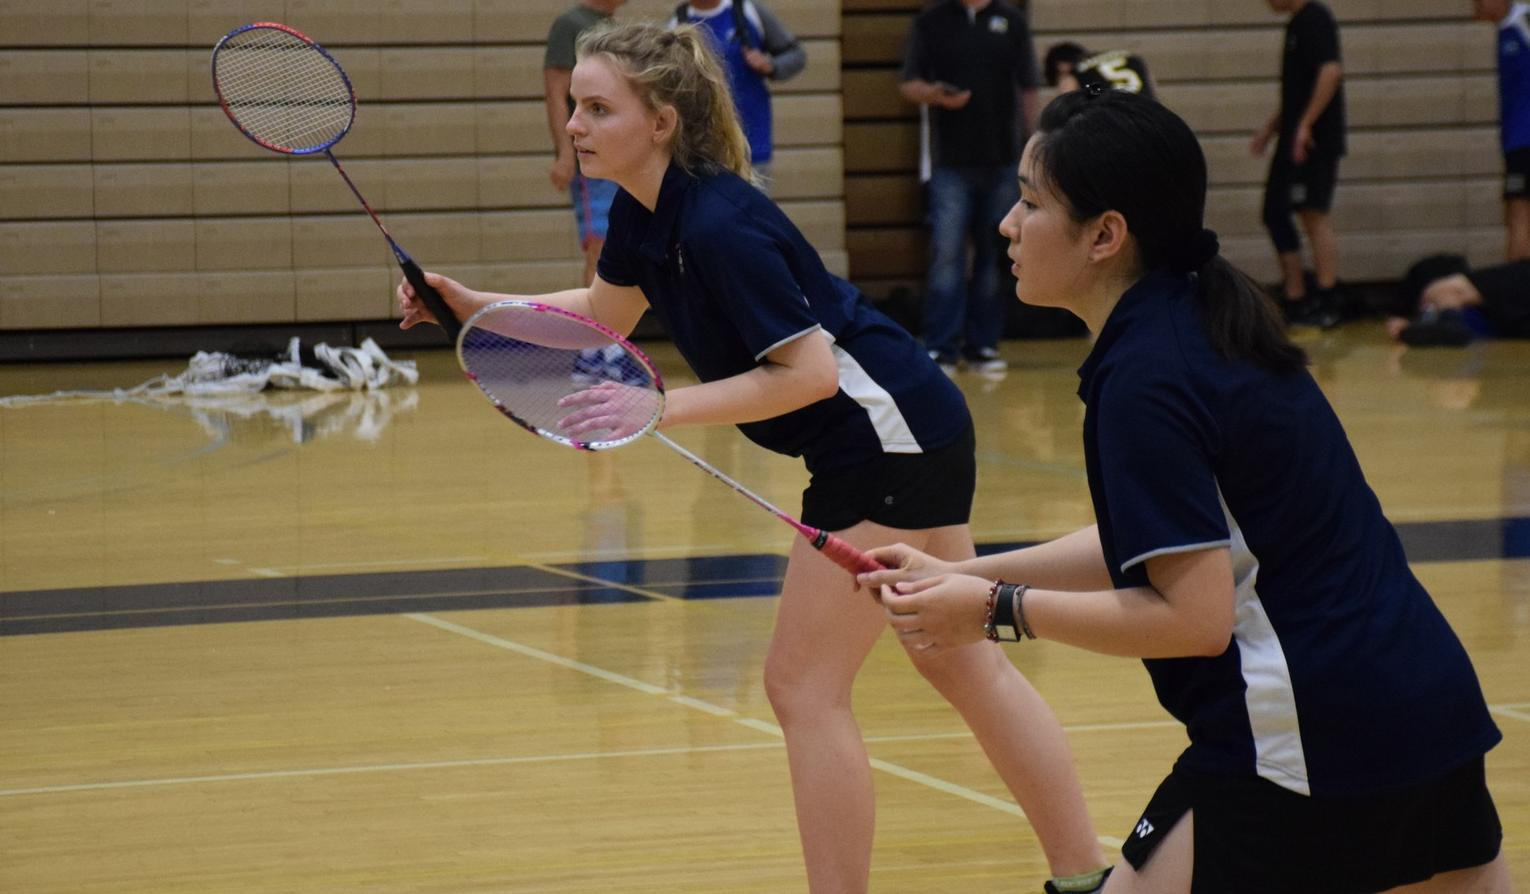 Women's badminton team beats Grossmont, moves closer to title